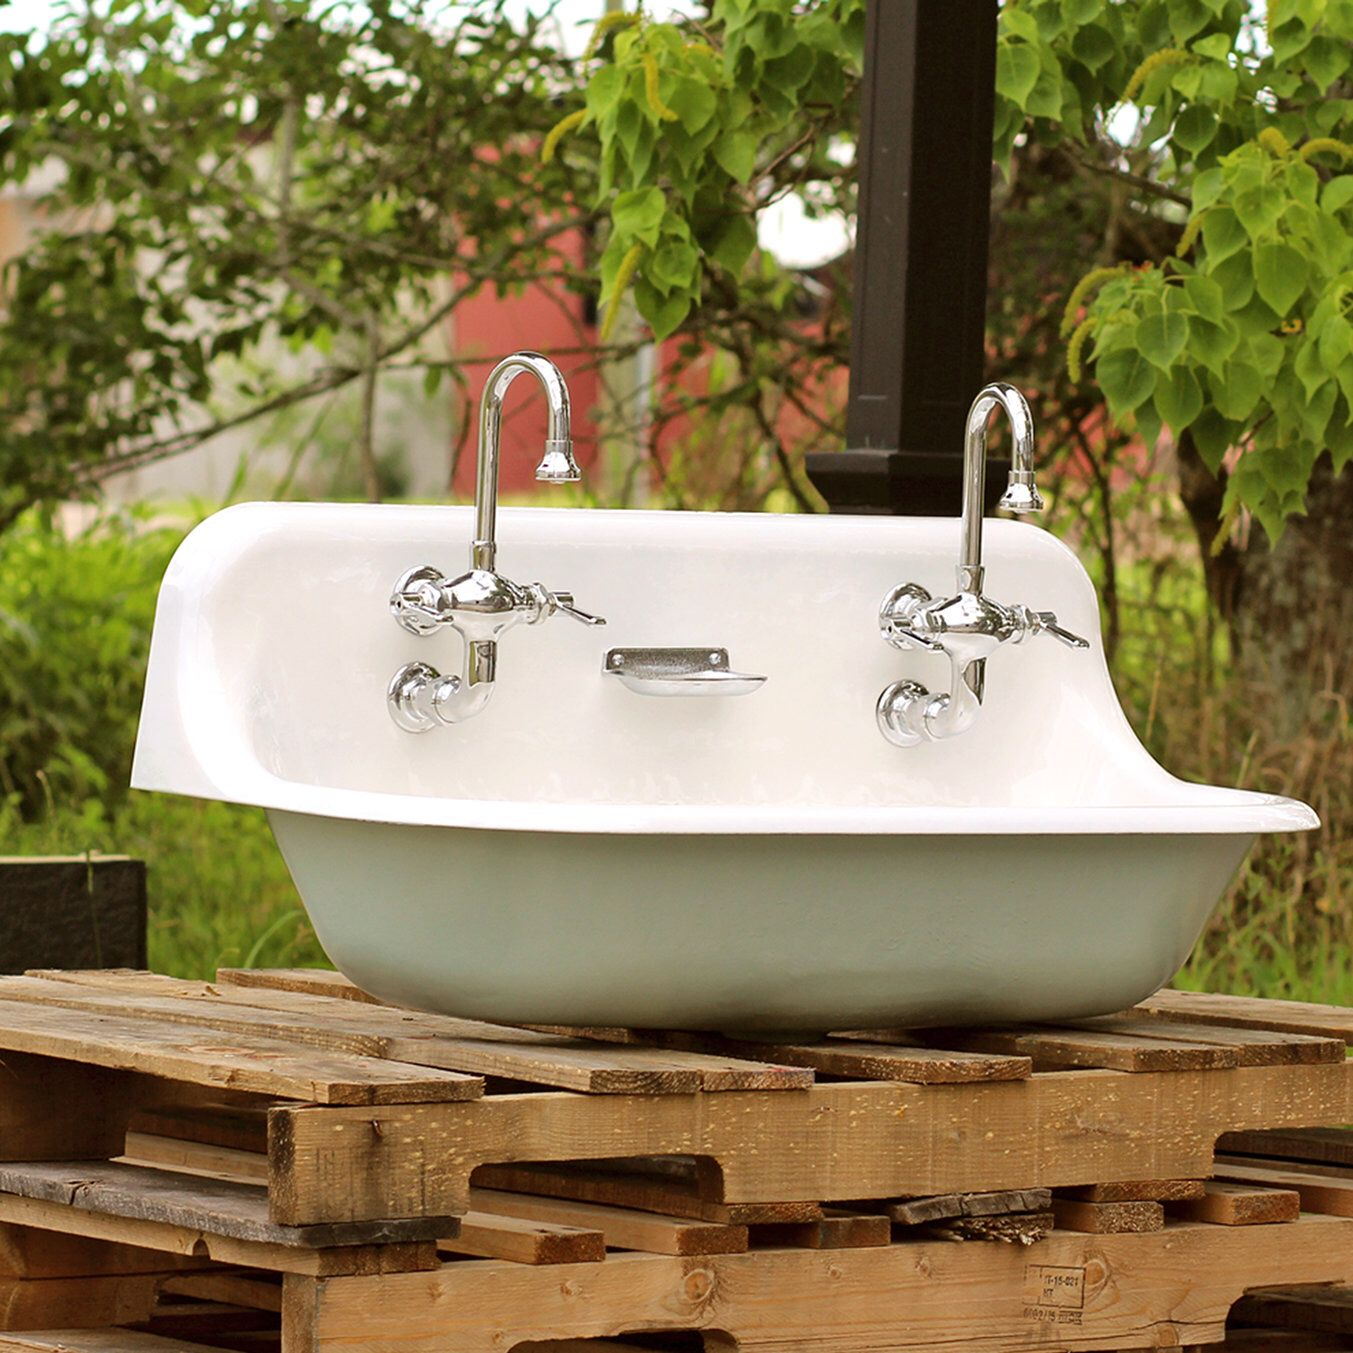 High Back 36 Antique Inspired Kohler Farm Sink Incarnadine Red